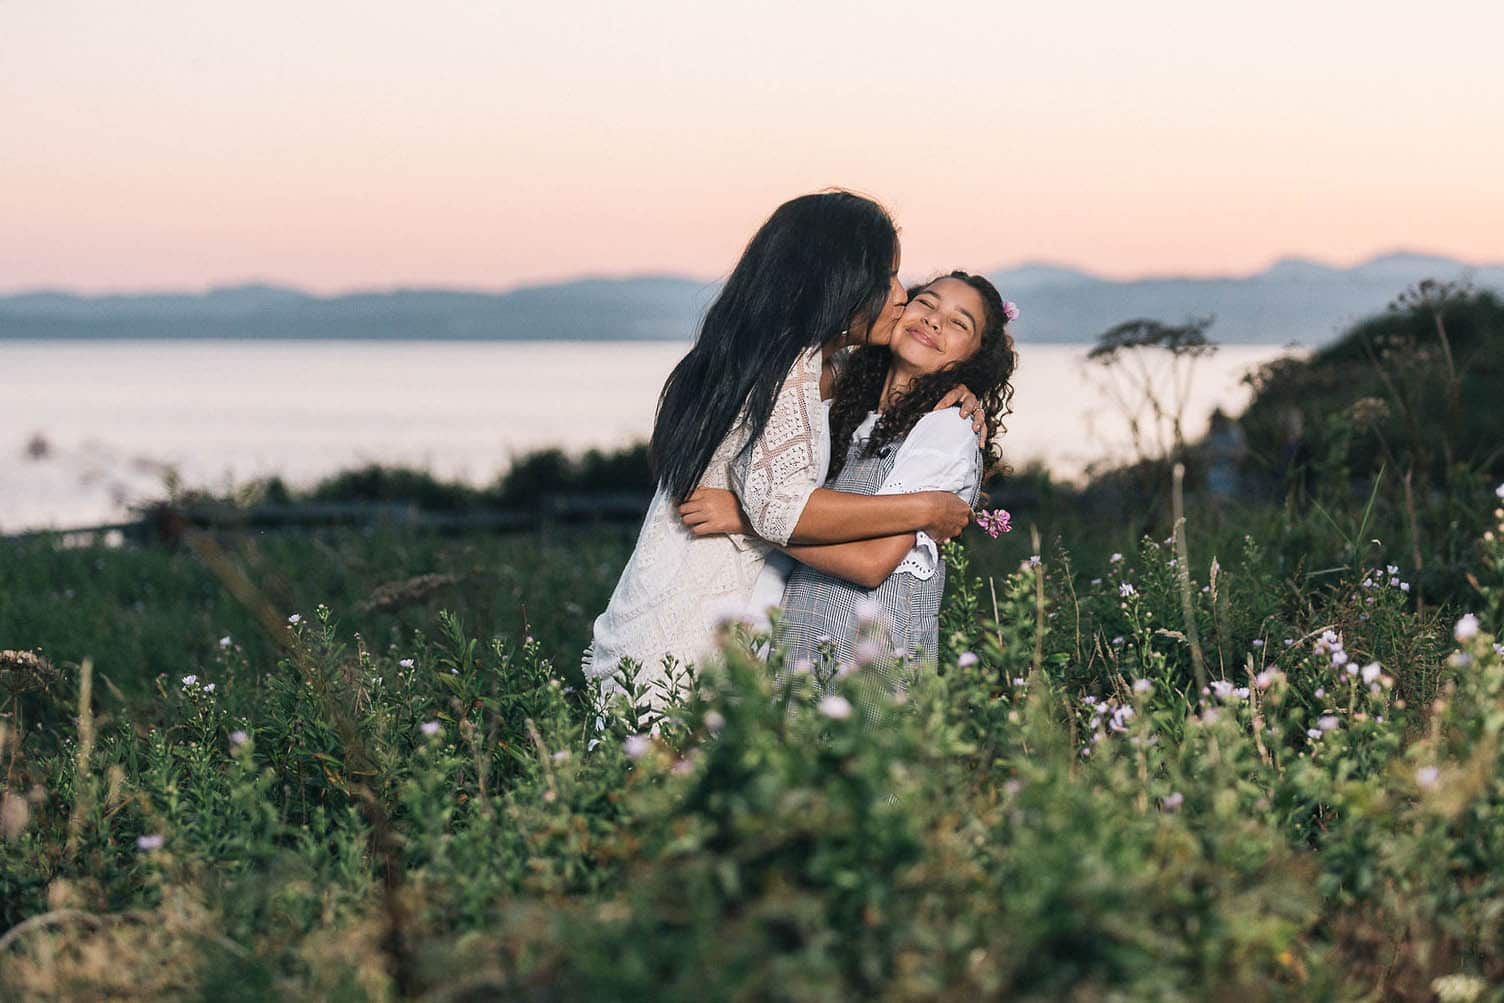 A mother and daughter share a moment of warmth at Beacon Hill in Victoria, BC. Photo by Marlboro Wang.